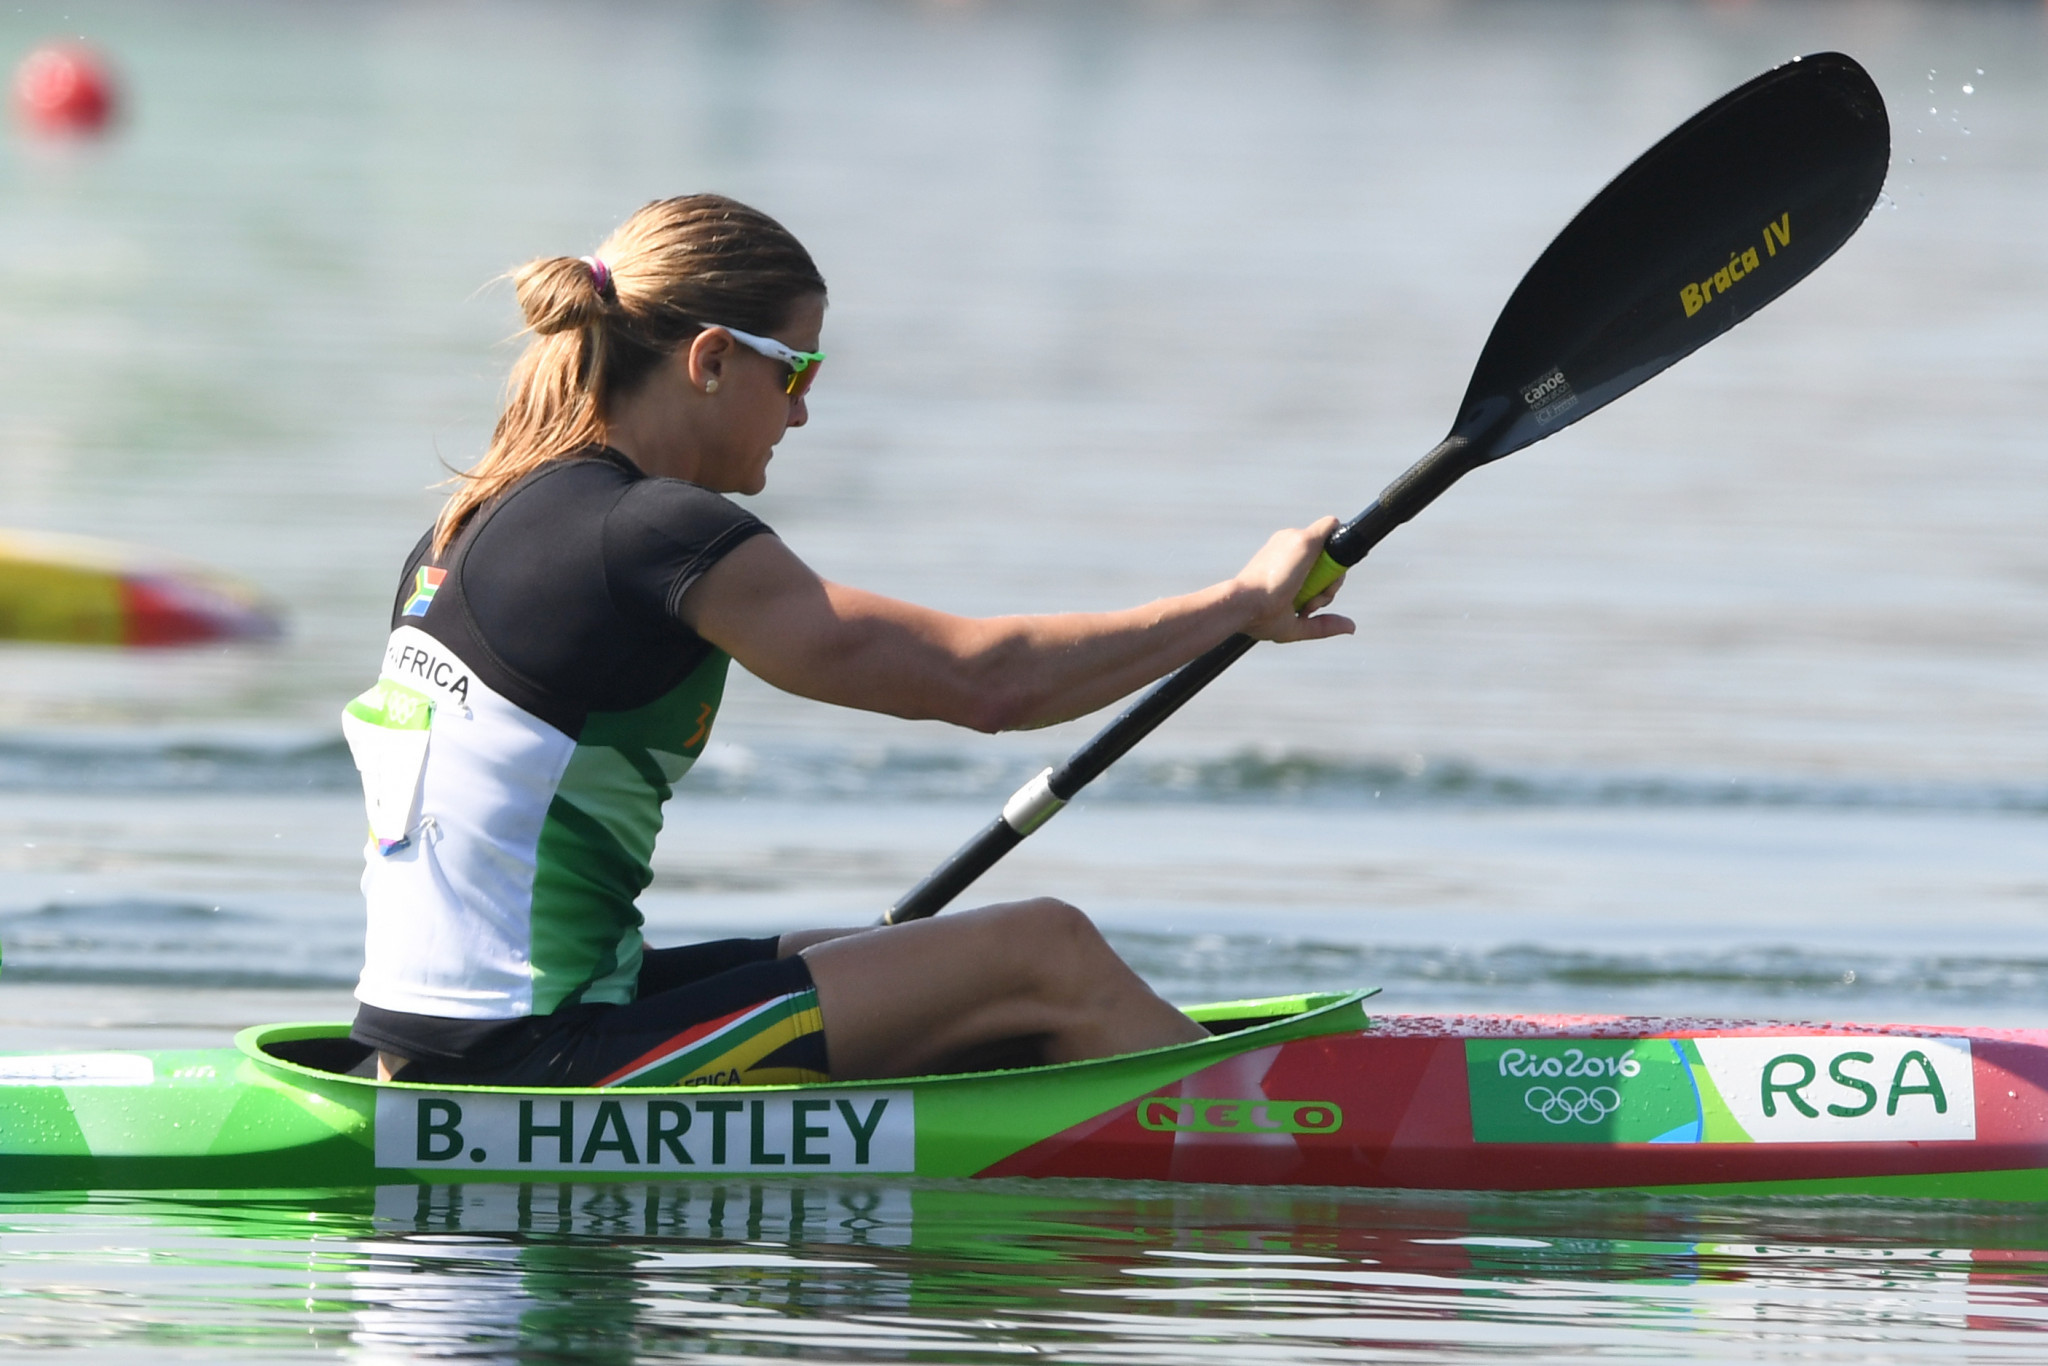 SASCOC praise Hartley after inclusion on list of IOC Athletes' Commission candidates